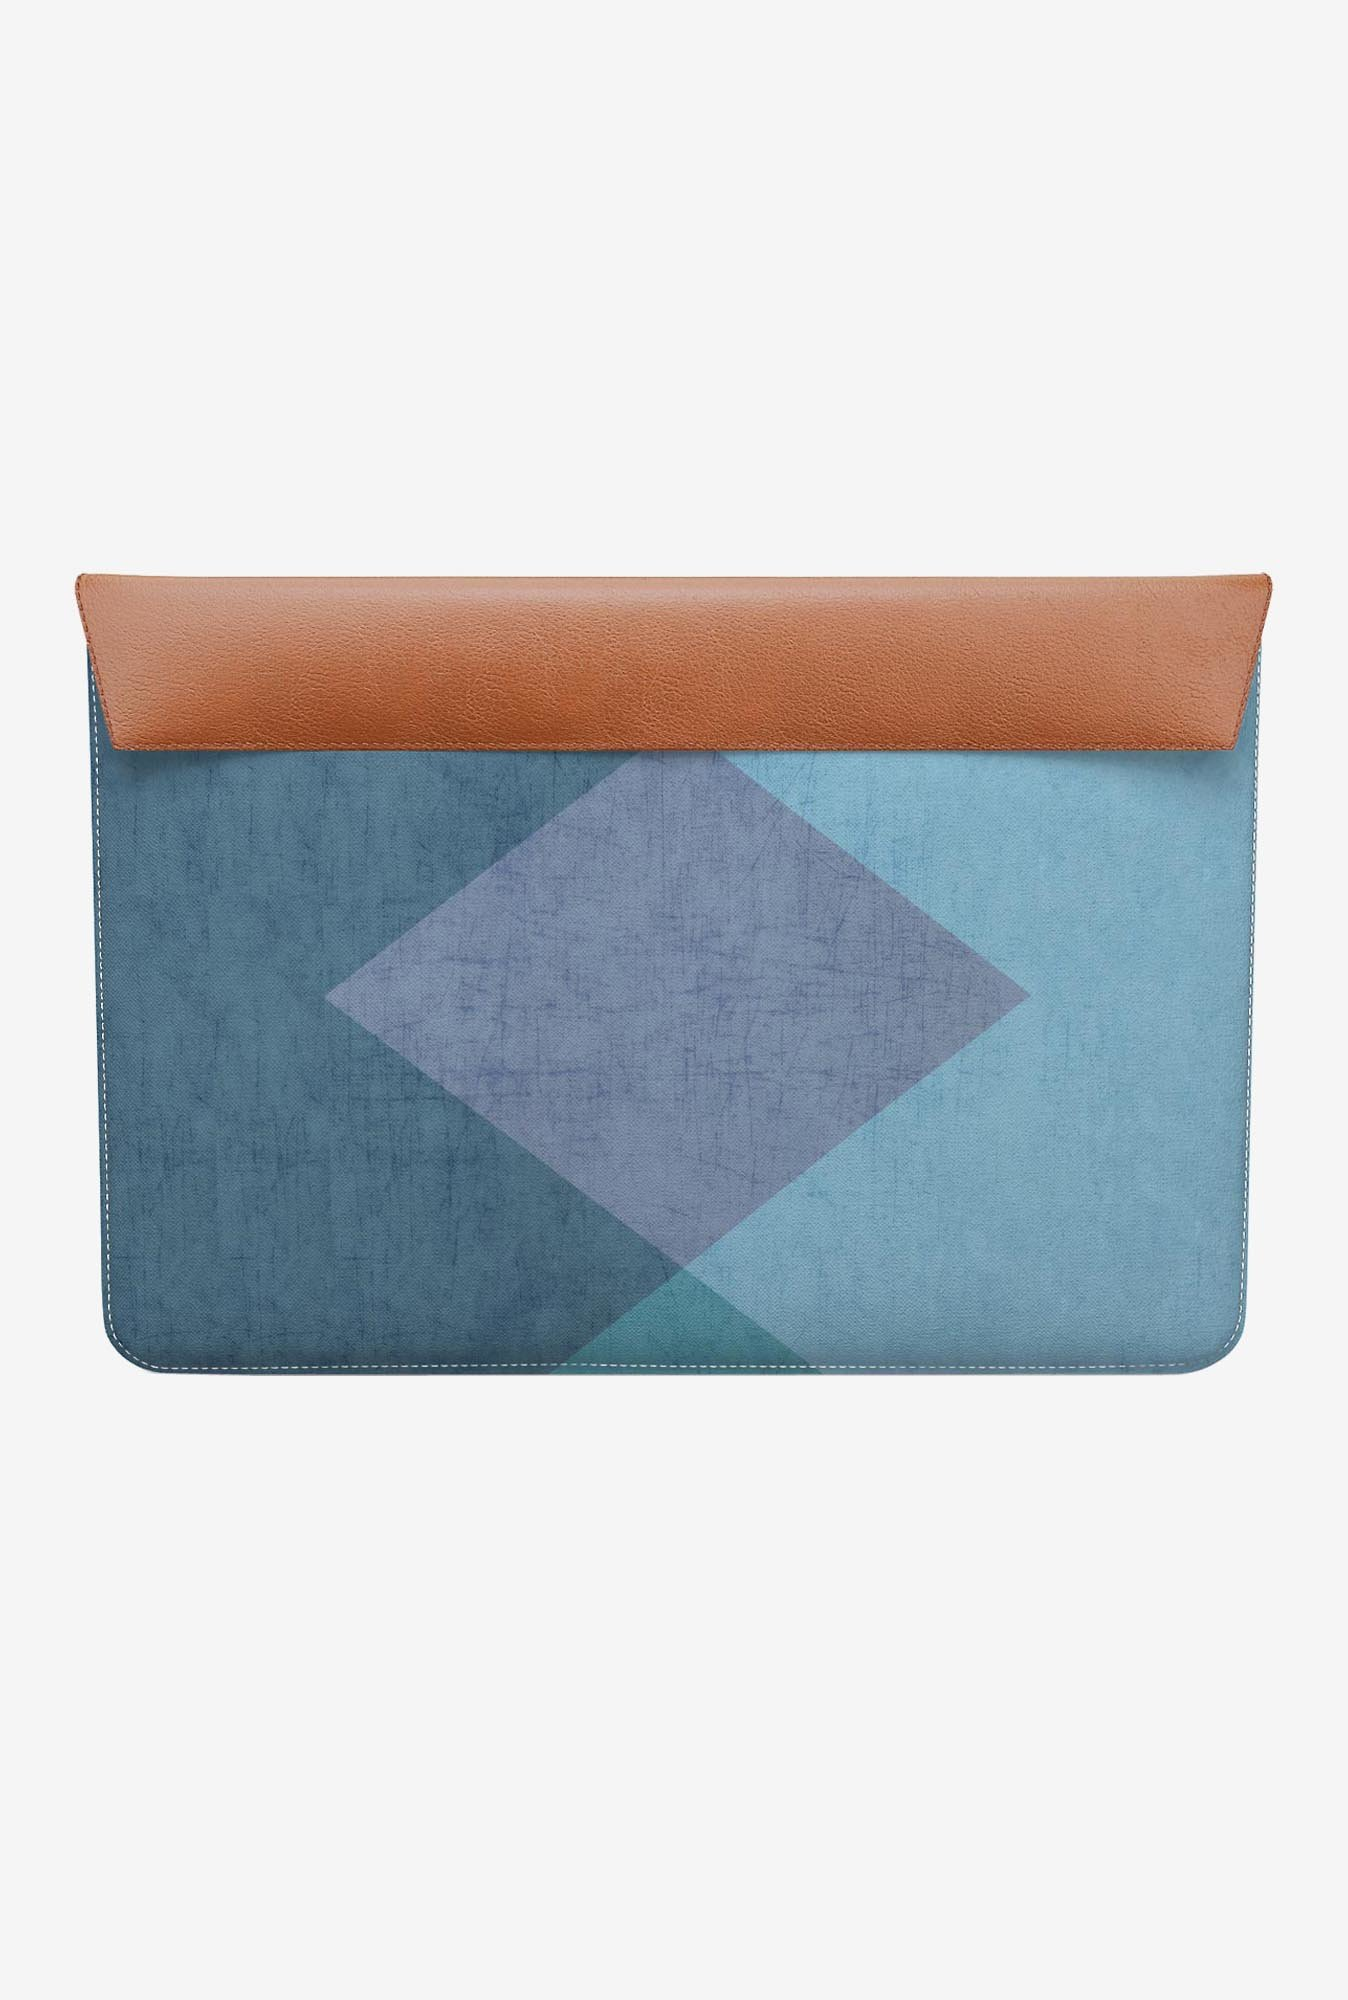 DailyObjects The Triangles MacBook Pro 15 Envelope Sleeve